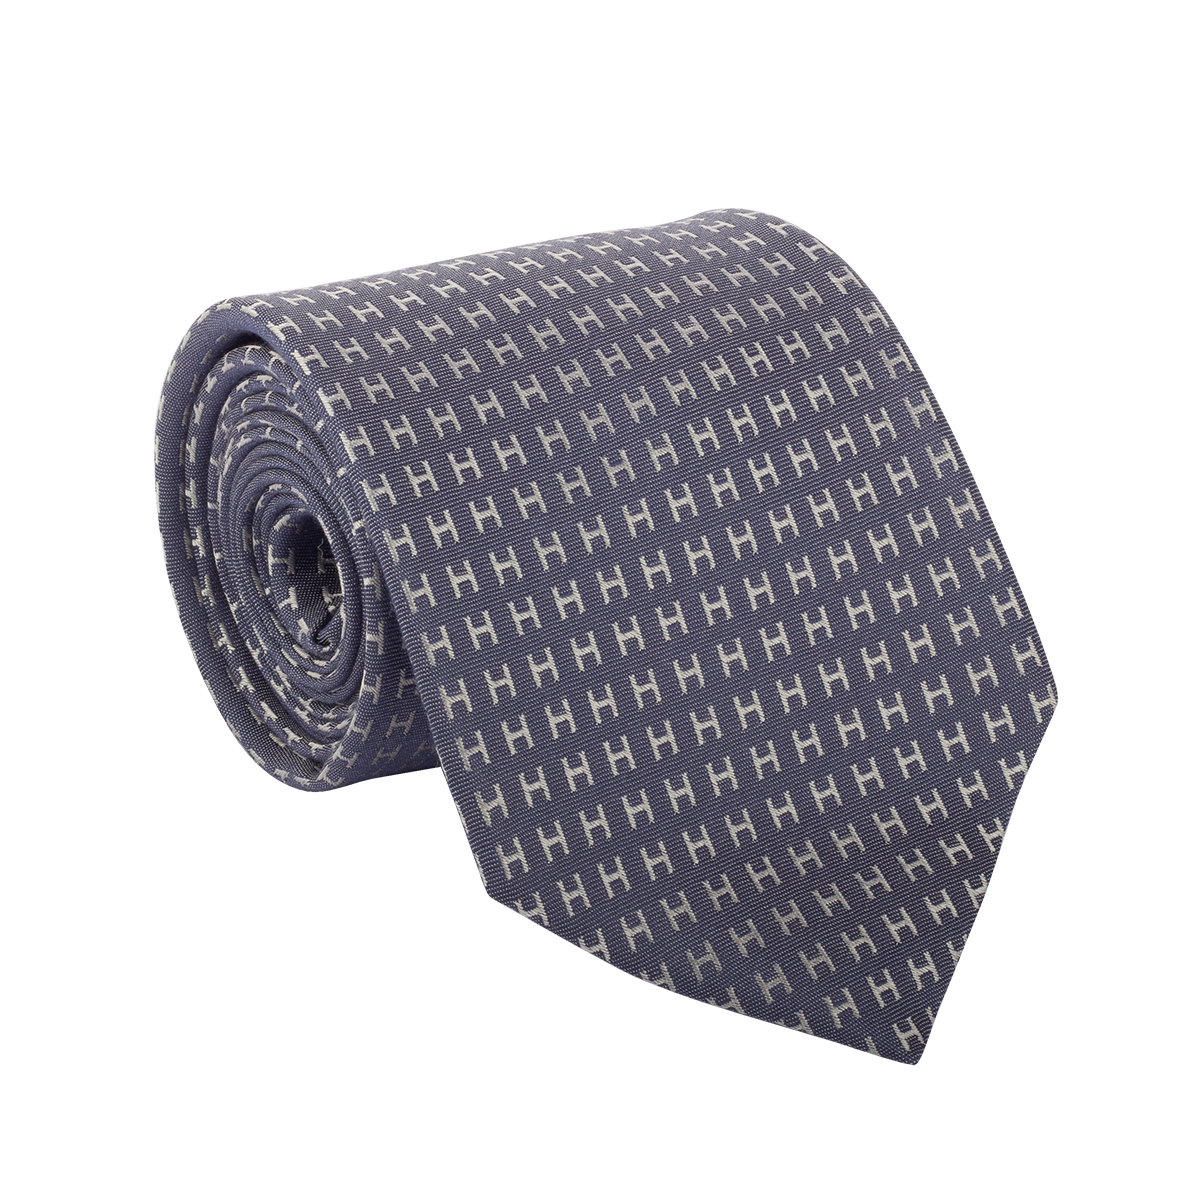 The Stylish Hermes Blue Tie